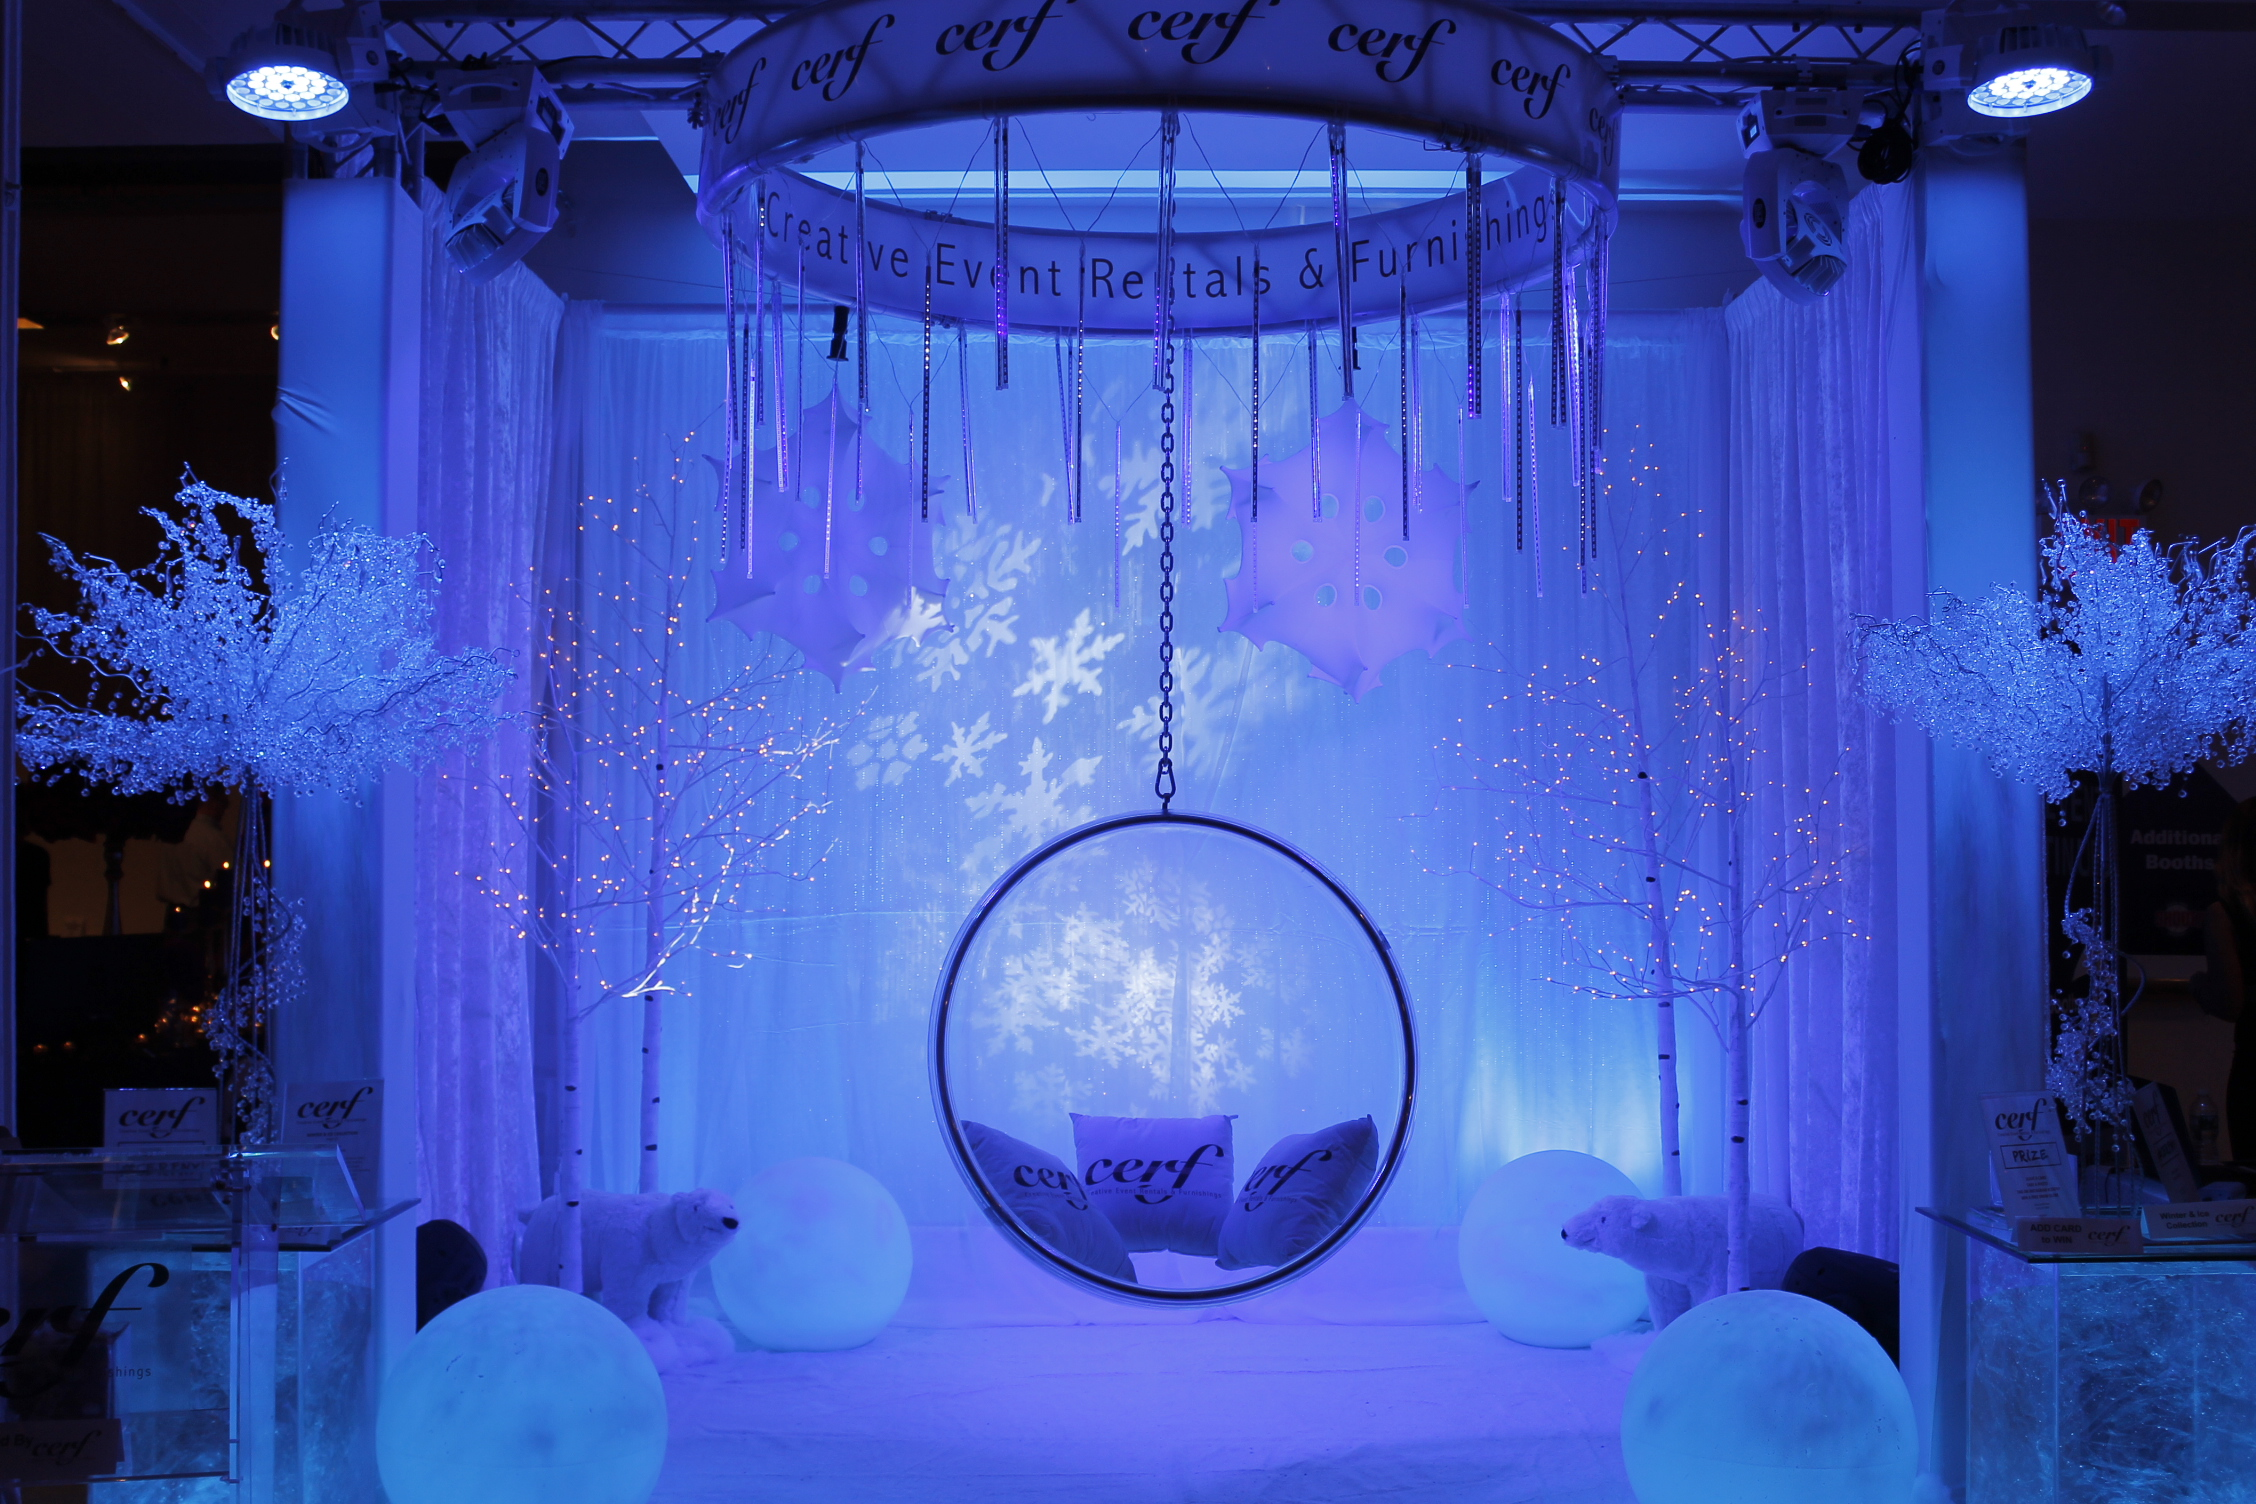 winter-ice-ring-chair-booth-03